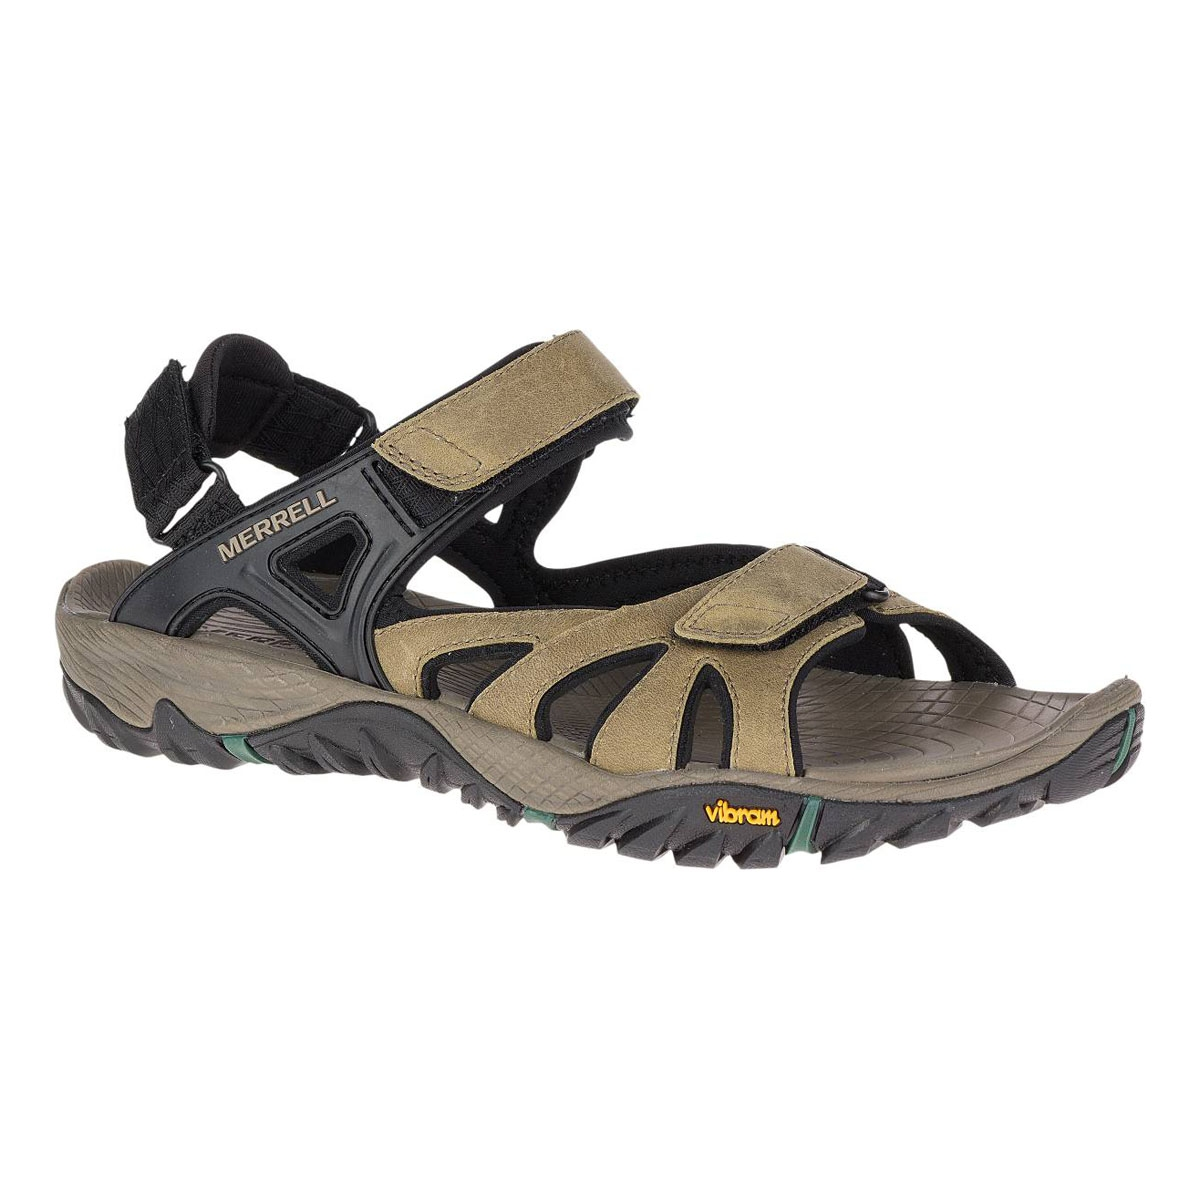 2b3091c8b531e Image of Merrell All Out Blaze Sieve Convert Sandals (Men's) - Stucco